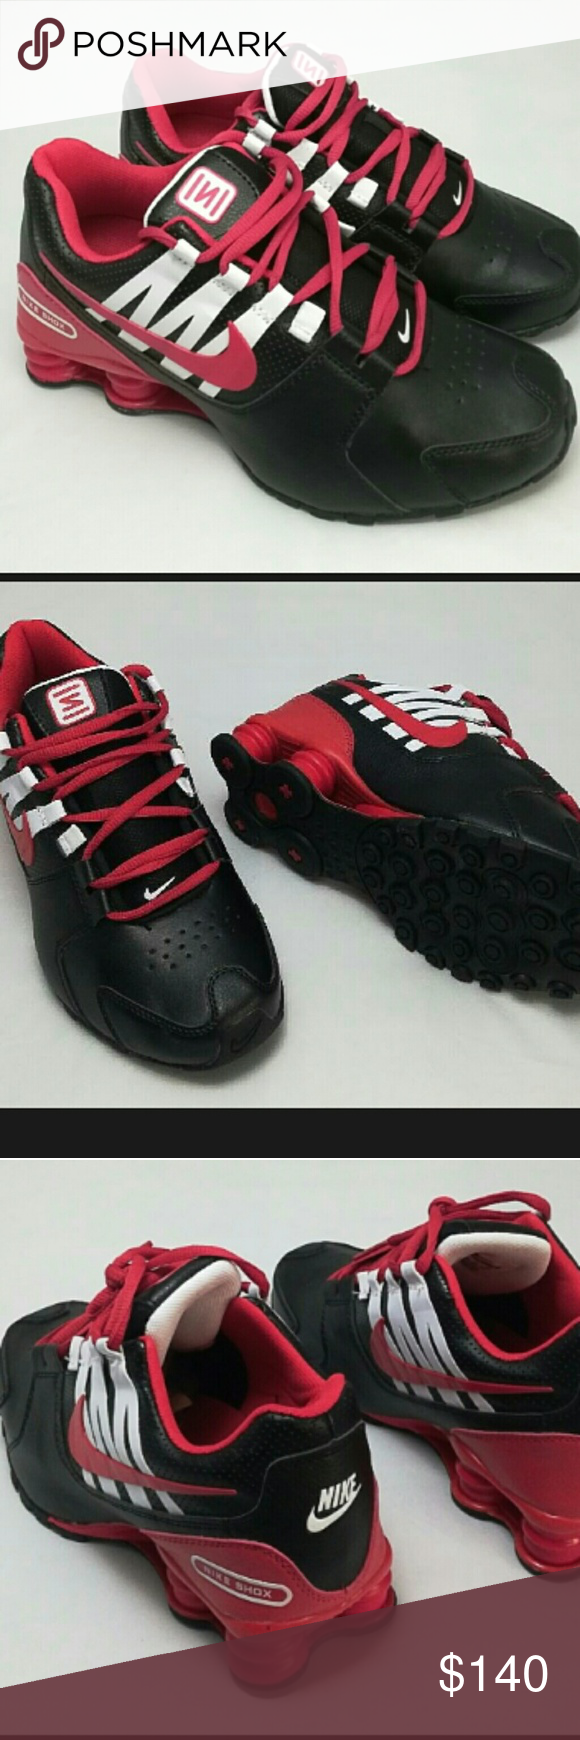 7c8f52e3cf14 ... discount new men women black white red nike shox avenue style meets  function in the nike